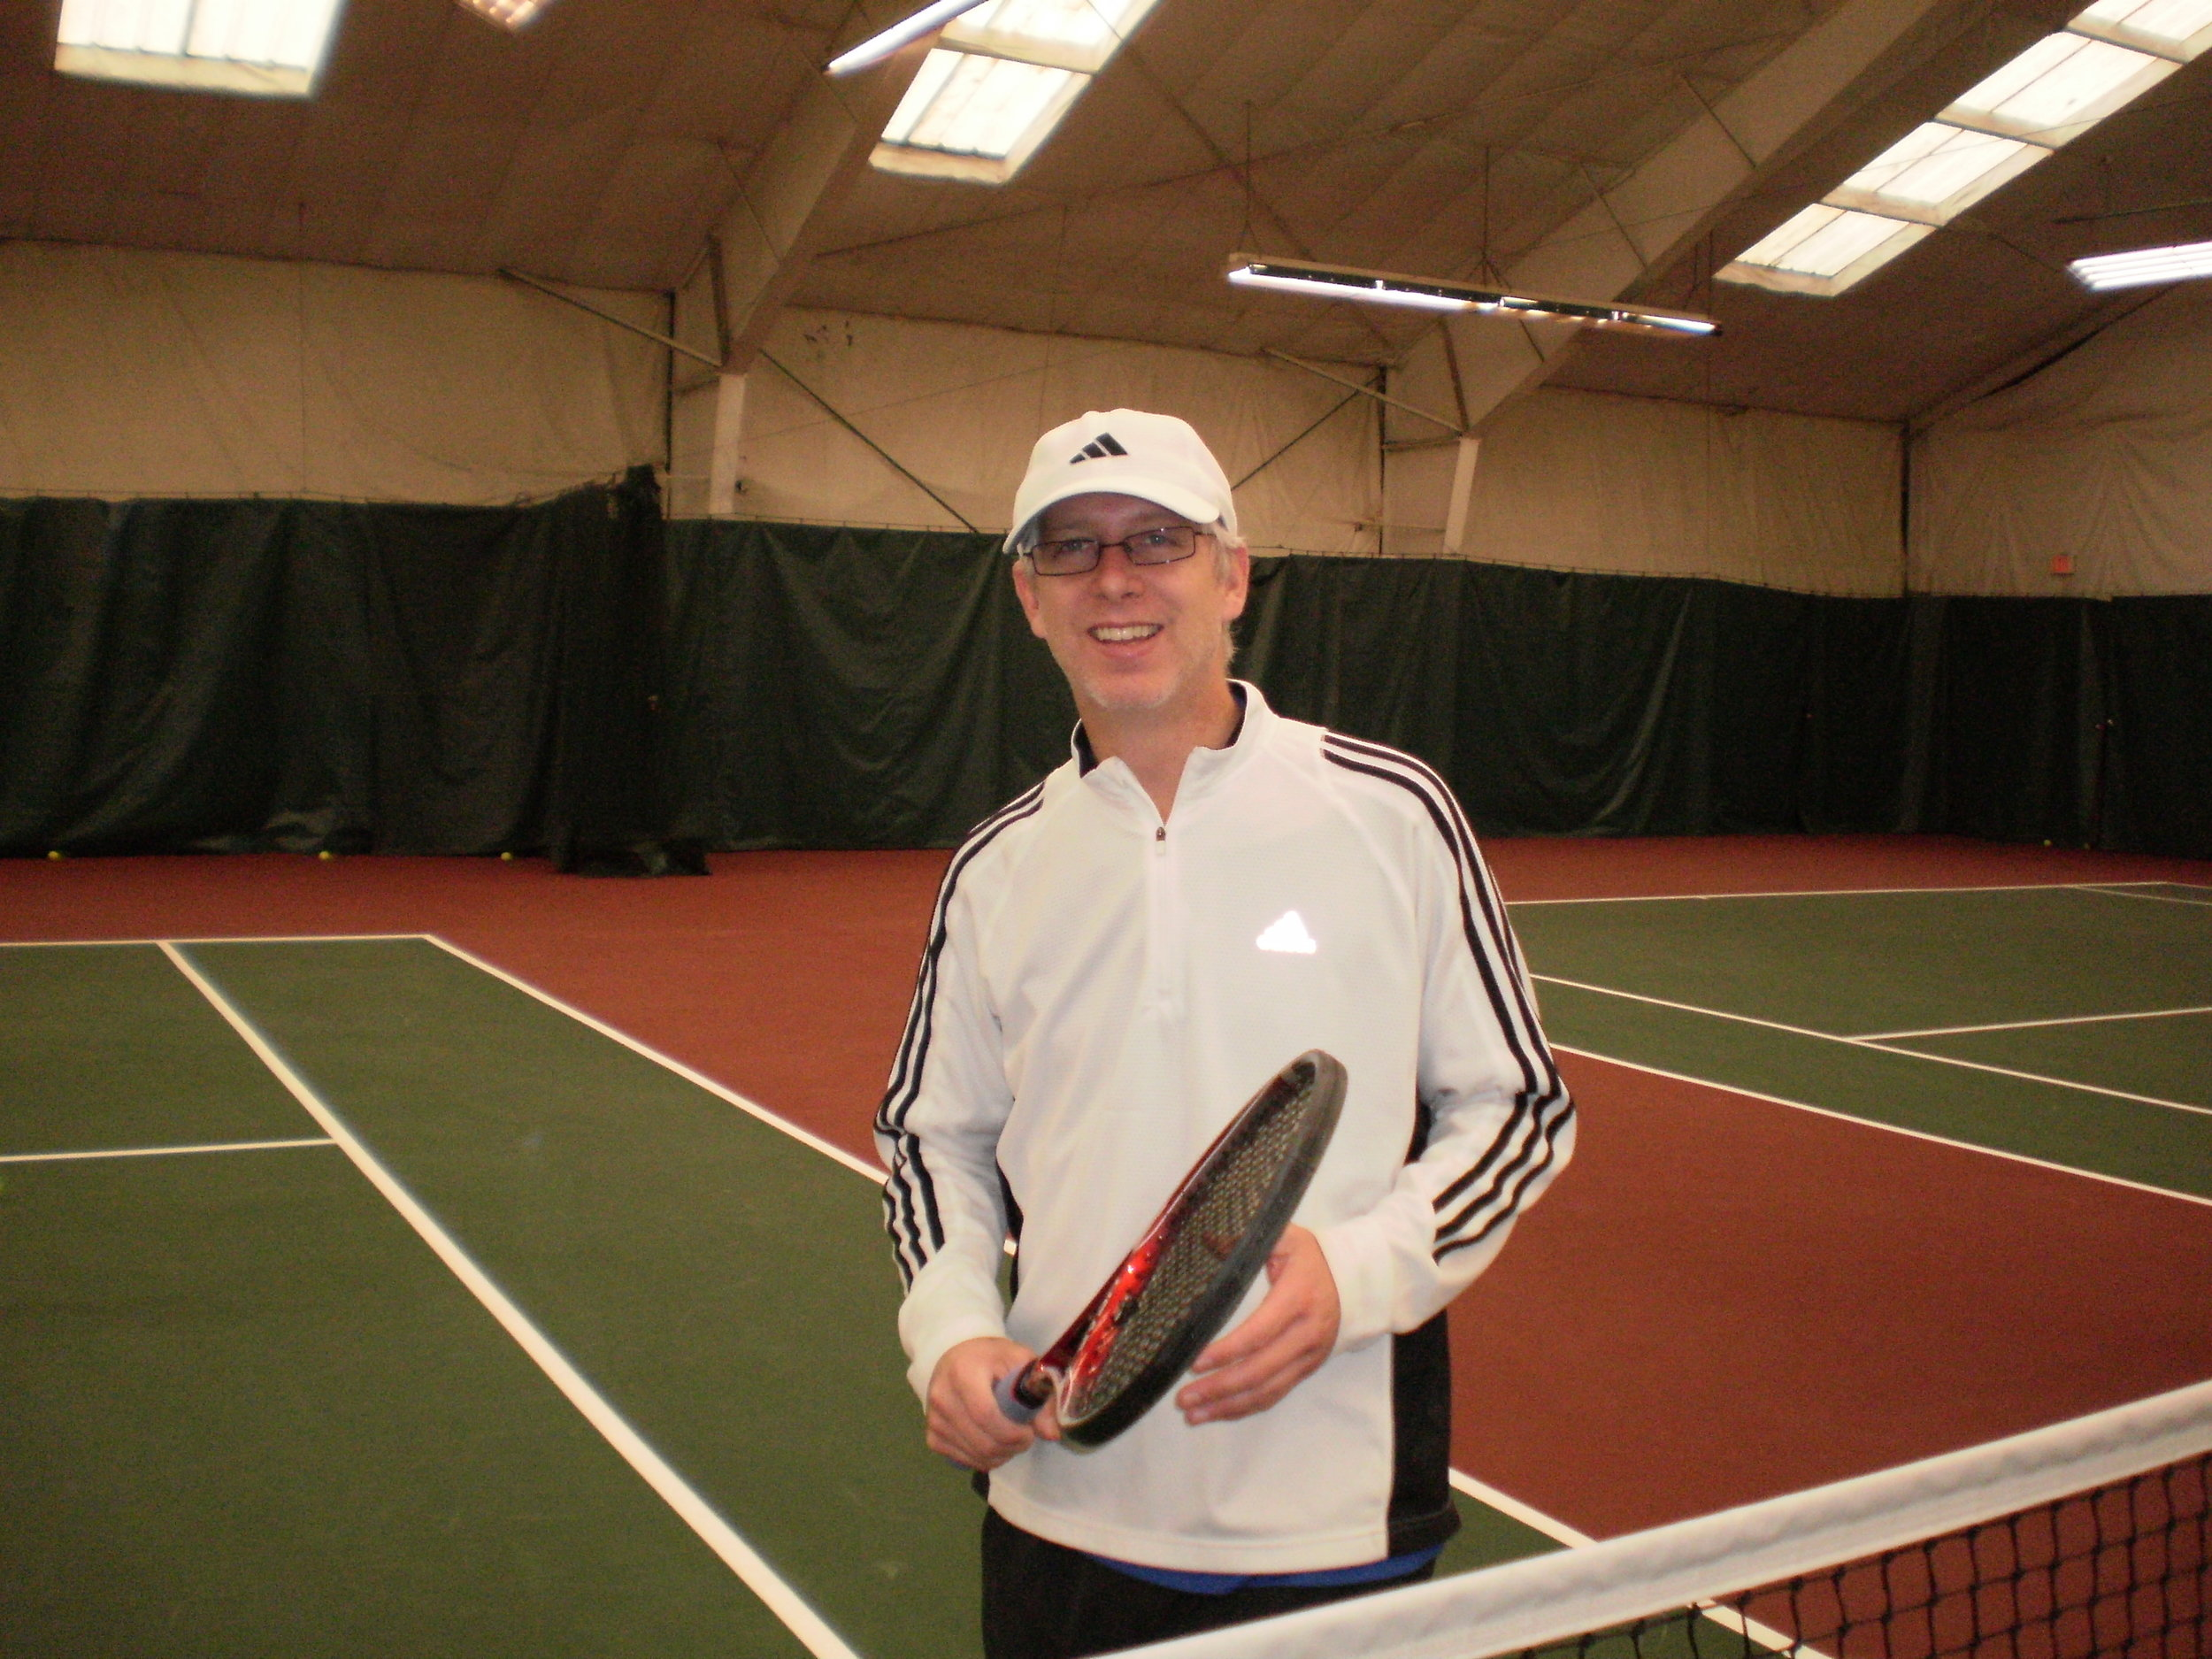 JIM MELESKO    Co-Director of Tennis   Jim has taught at the Nick Bollettieri Tennis Academy in FL working with young aspiring juniors like Maria Sharapova and Tatiana Golovin. He's traveled around the world conducting promotional clinics. Jim has taught in the greater Hartford area for the past 10 years three of which as the head pro at the Newing Tennis Center. Jim is looking forward to teaching all ability levels and sharing his love for the game.